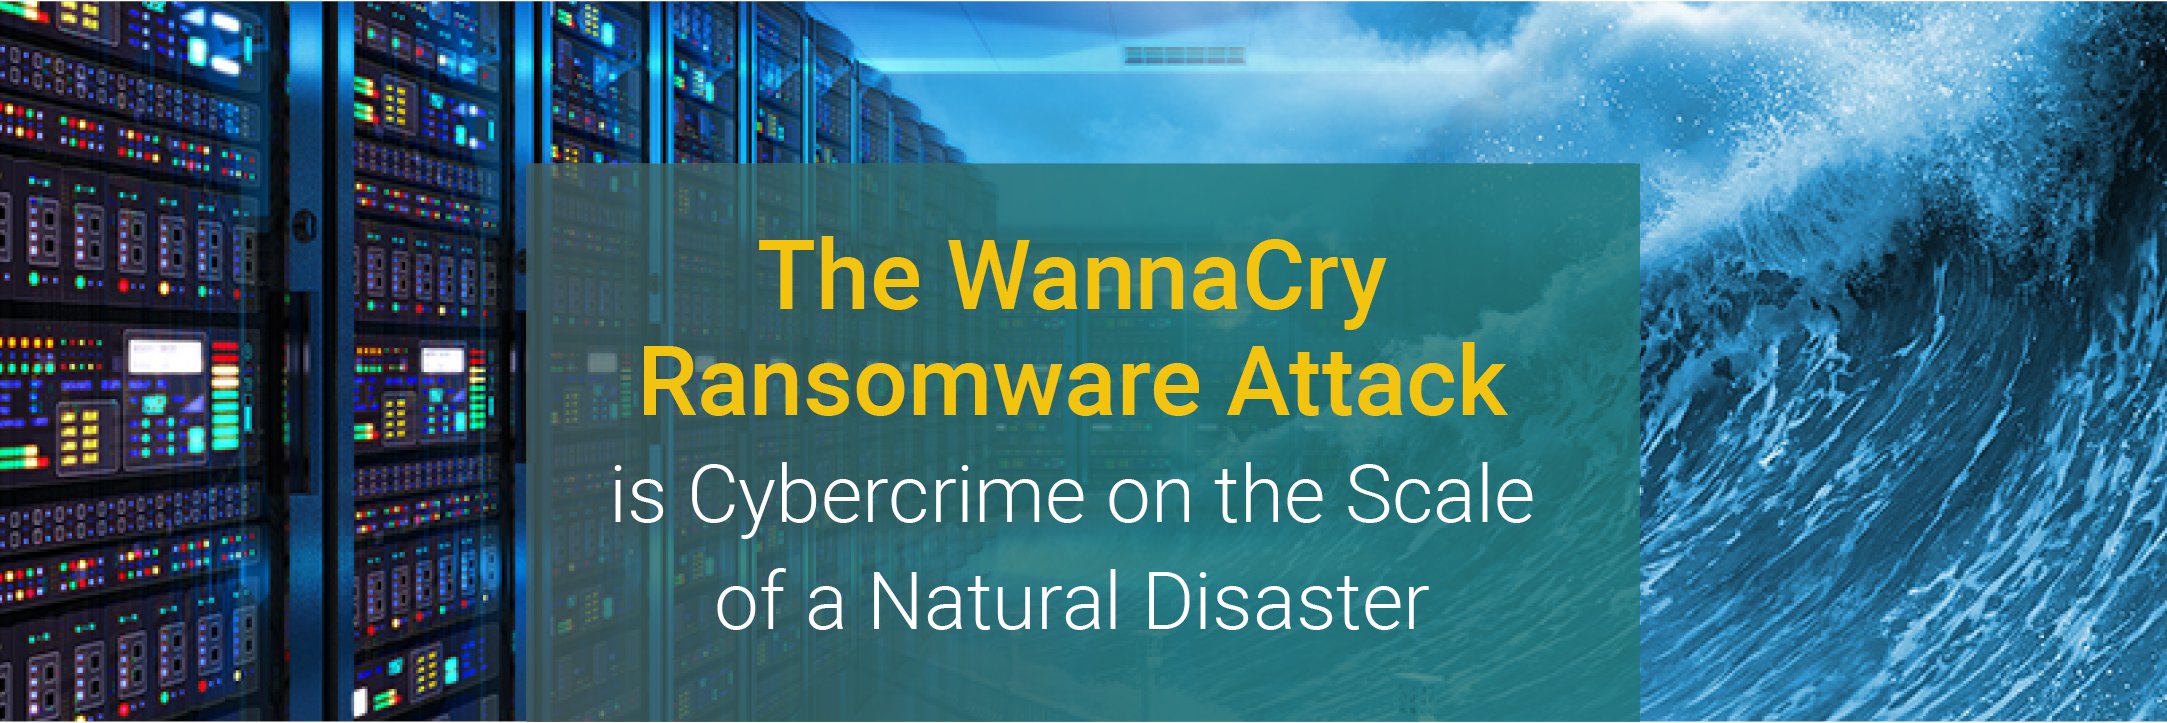 The WannaCry Ransomware Attack is Cybercrime on the Scale of a Natural Disaster